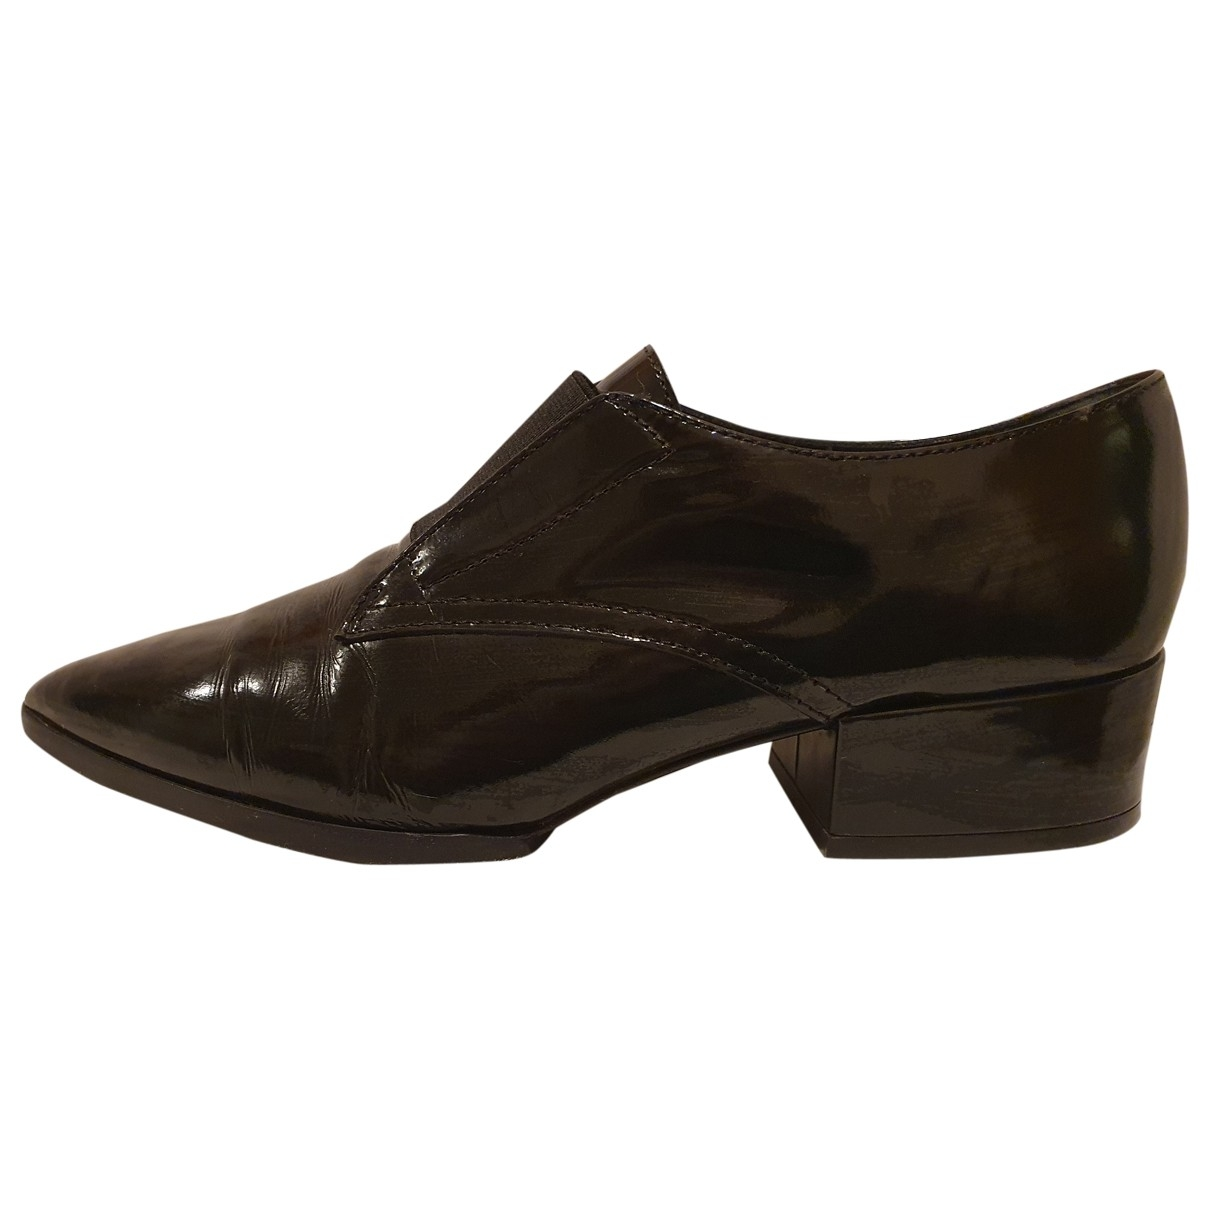 Golden Goose Patent leather flats